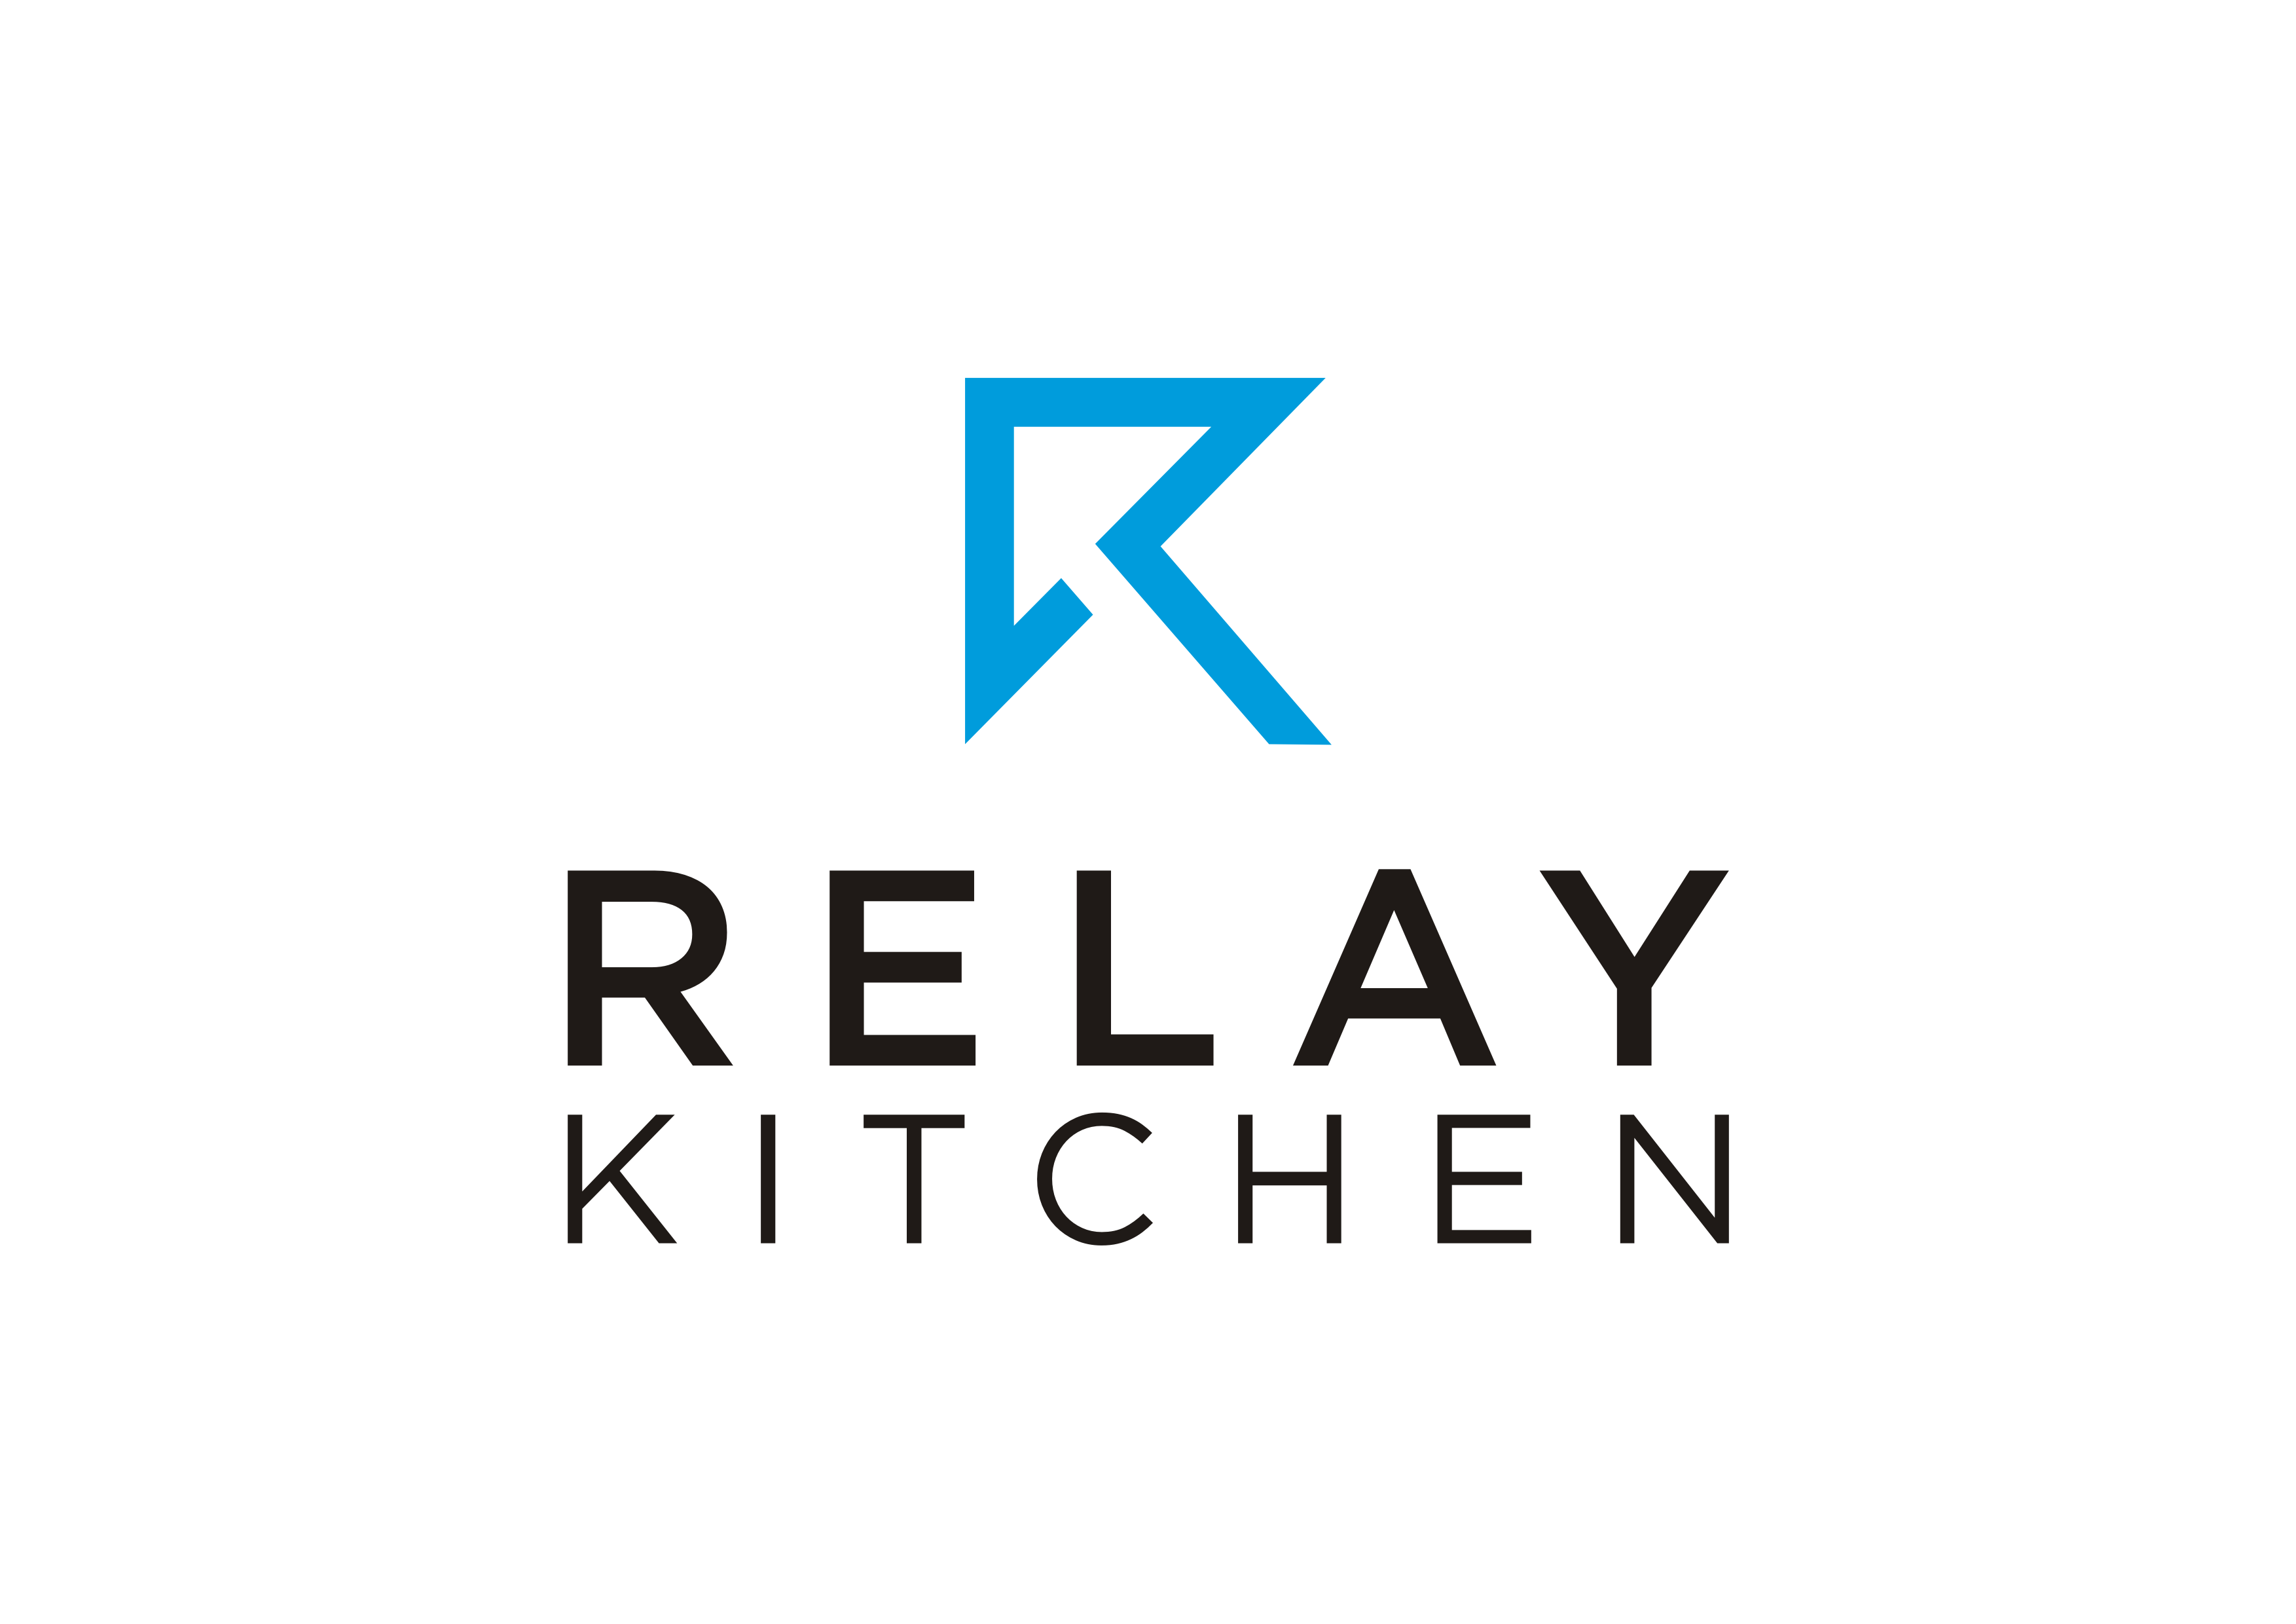 Create an awesome logo for Relay Kitchen! (high-end kitchen tools)